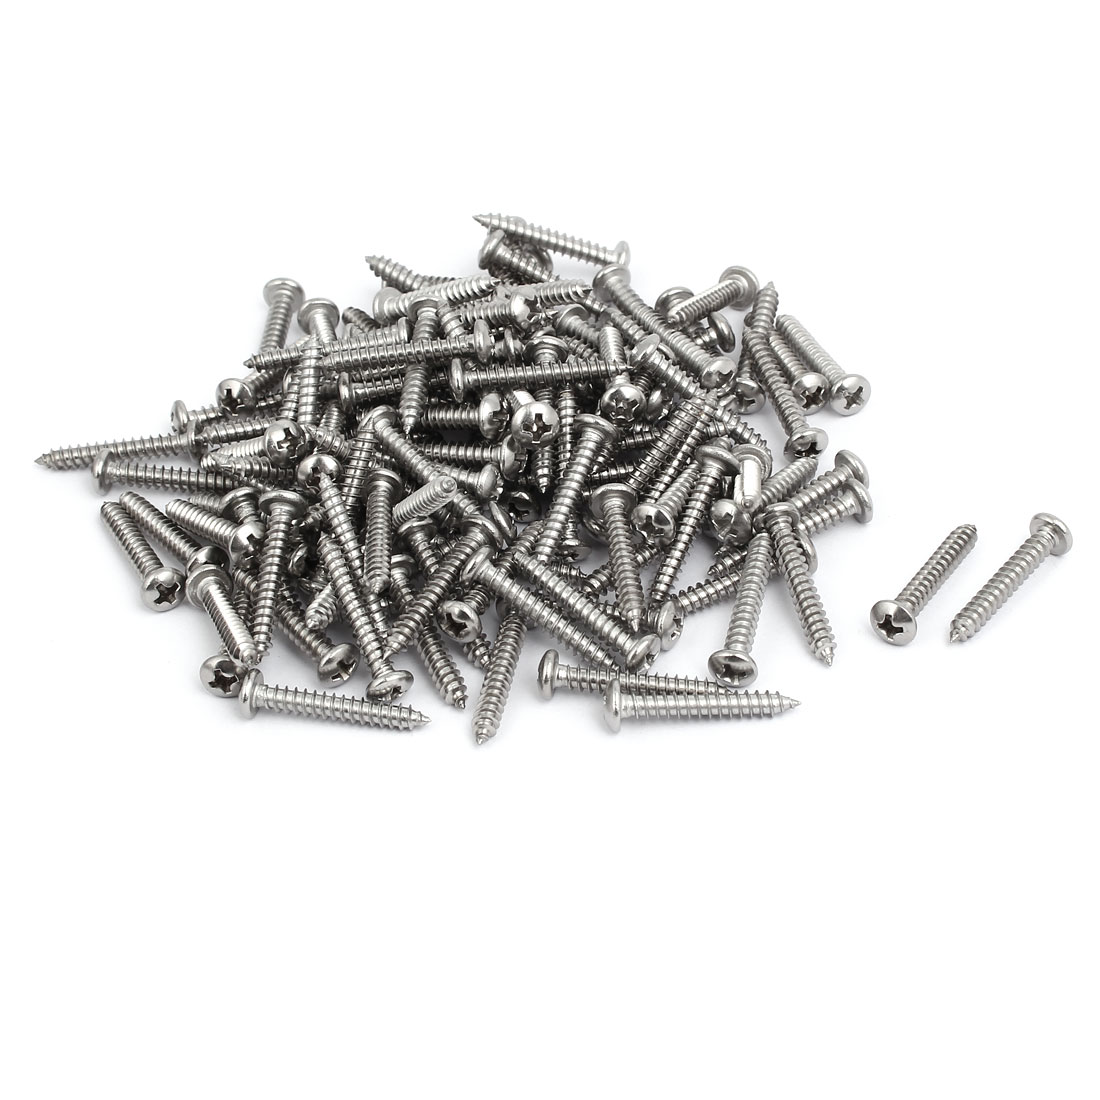 M4x25mm 304 Stainless Steel Phillips Drive Pan Head Self Tapping Screws 150pcs